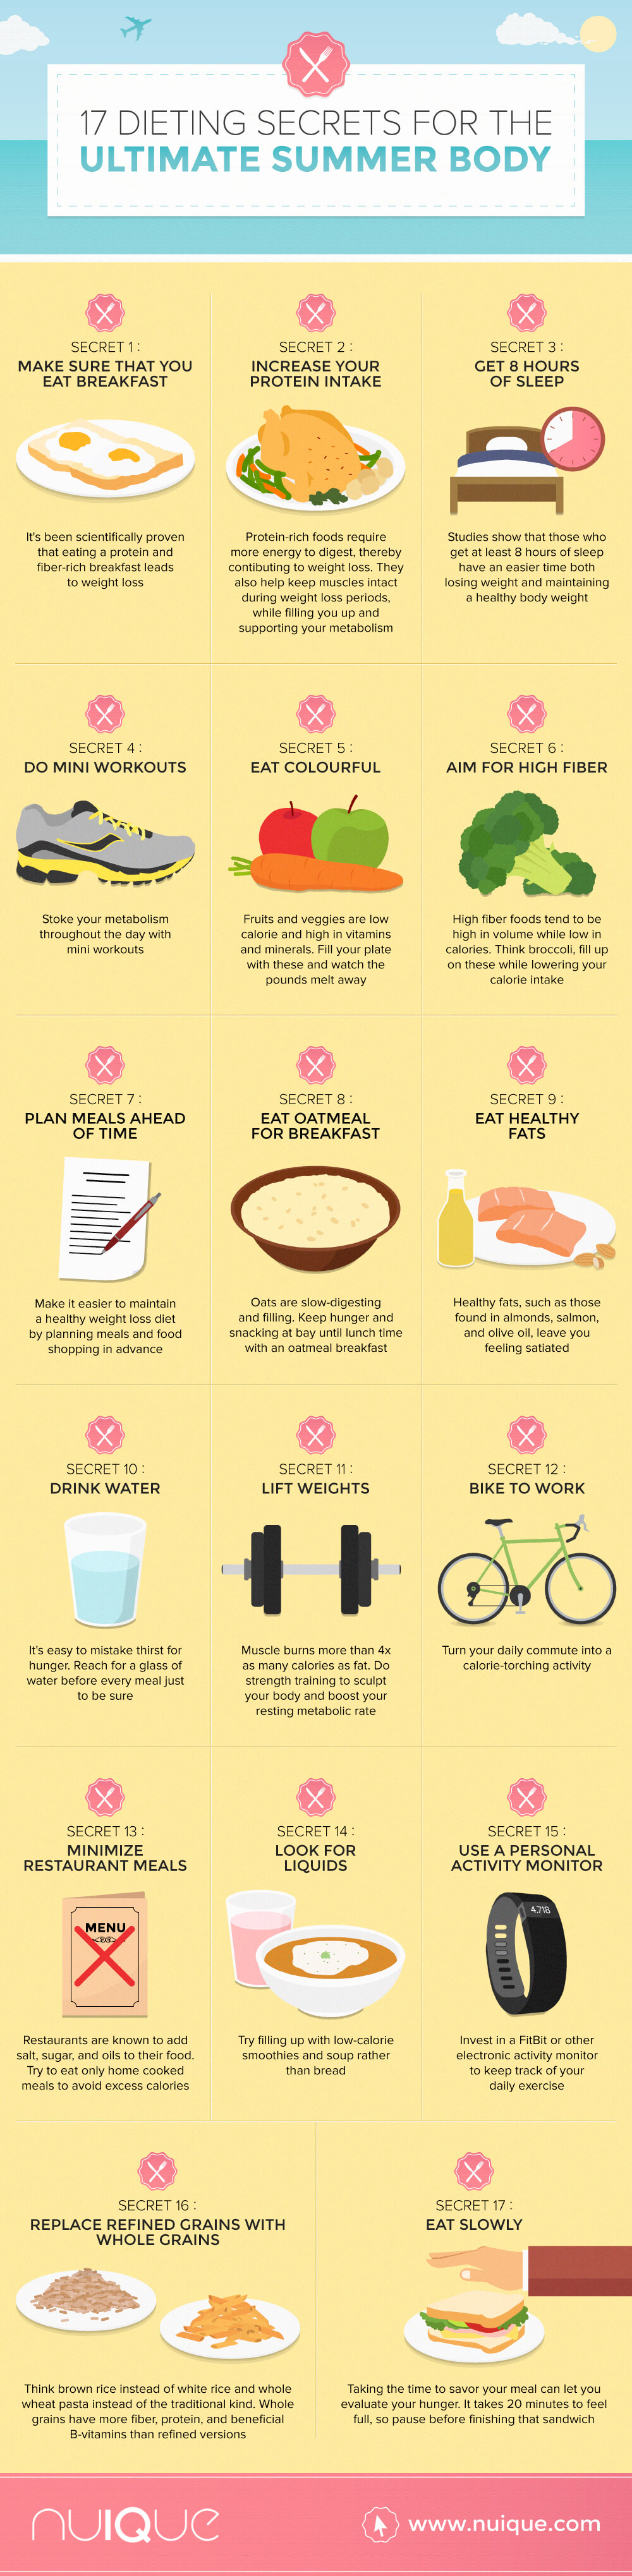 17-dieting-secrets-for-the-ultimate-summer-body-infographic